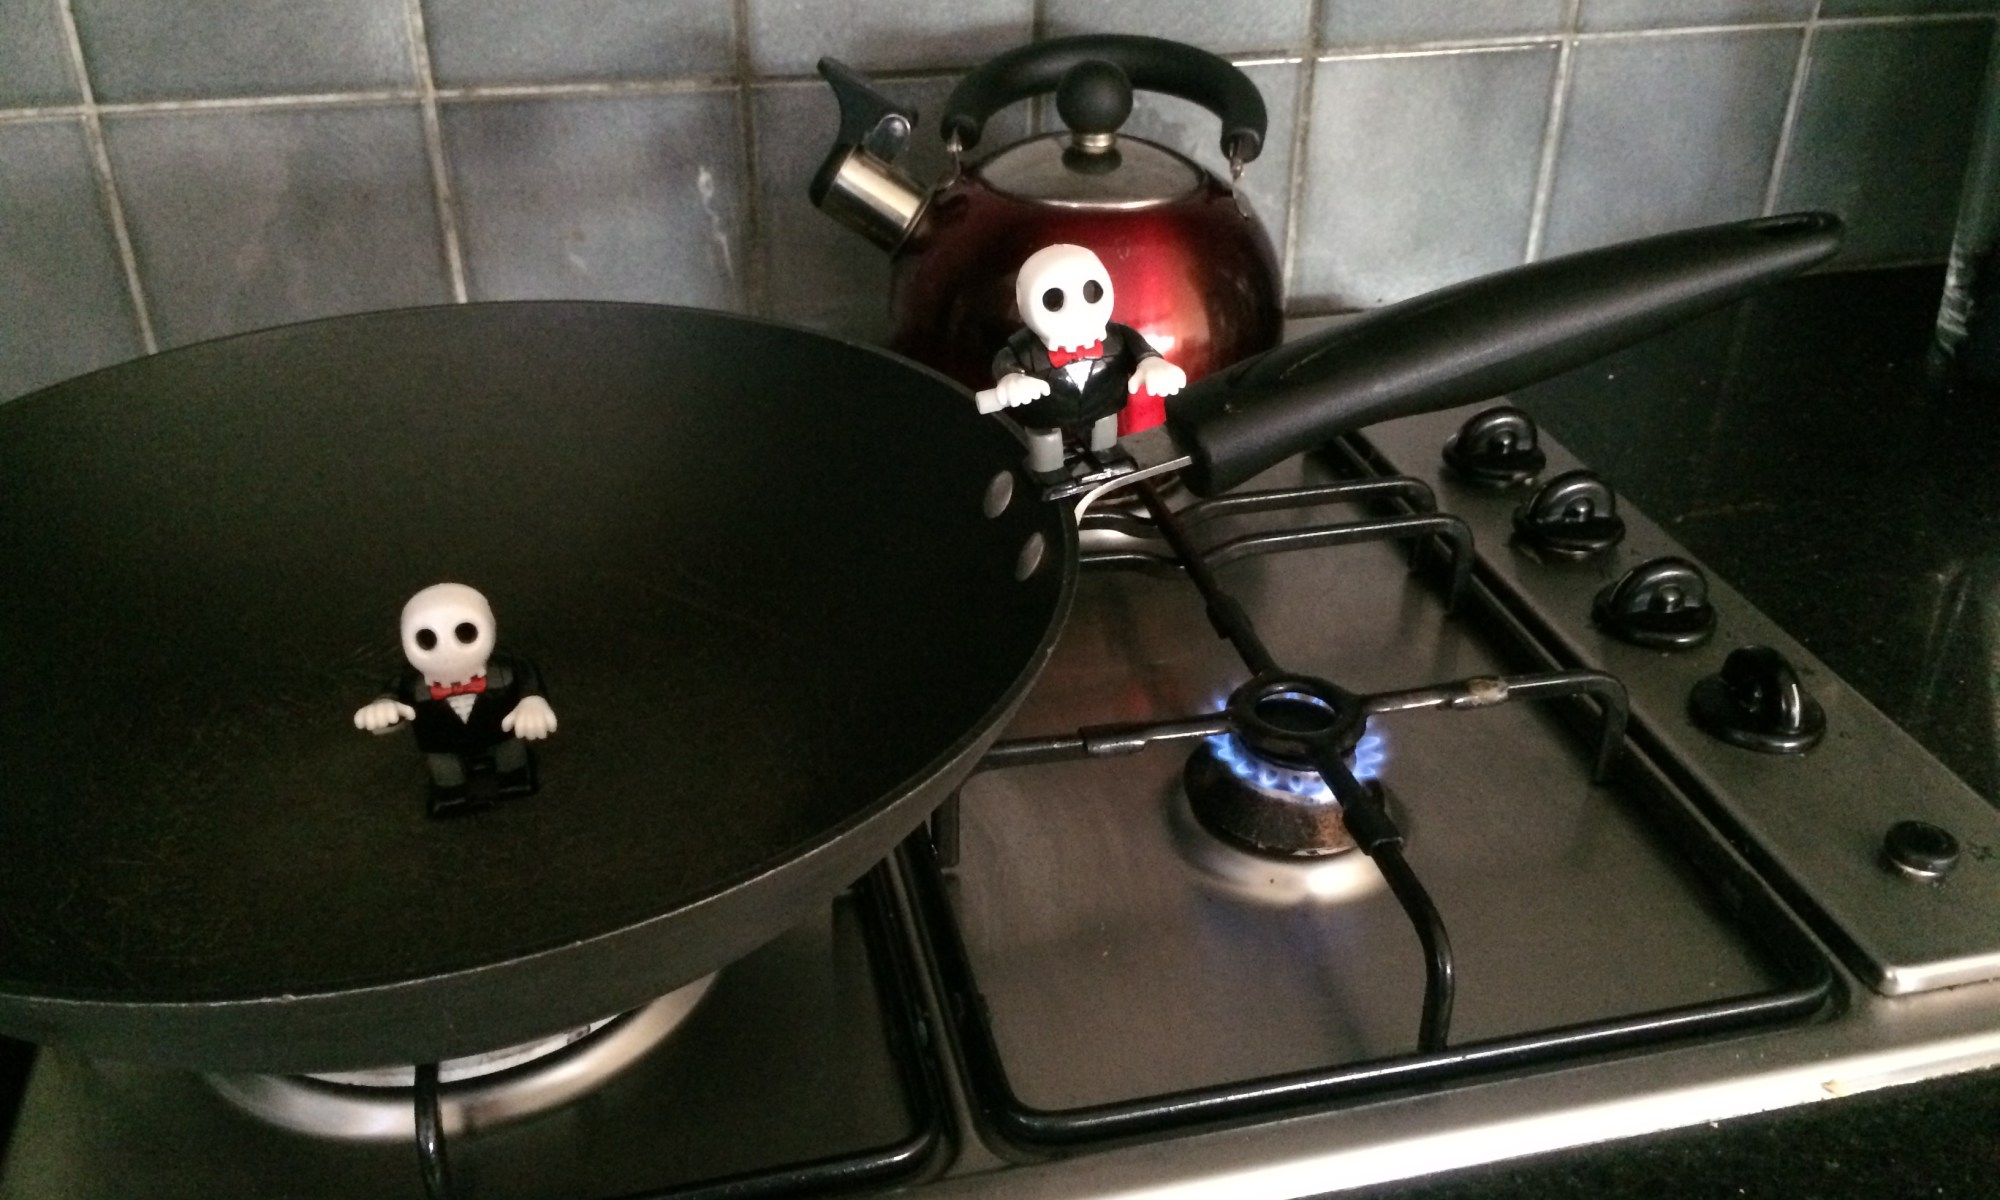 2 skeleton wind up toys jumping from wok to gas flame